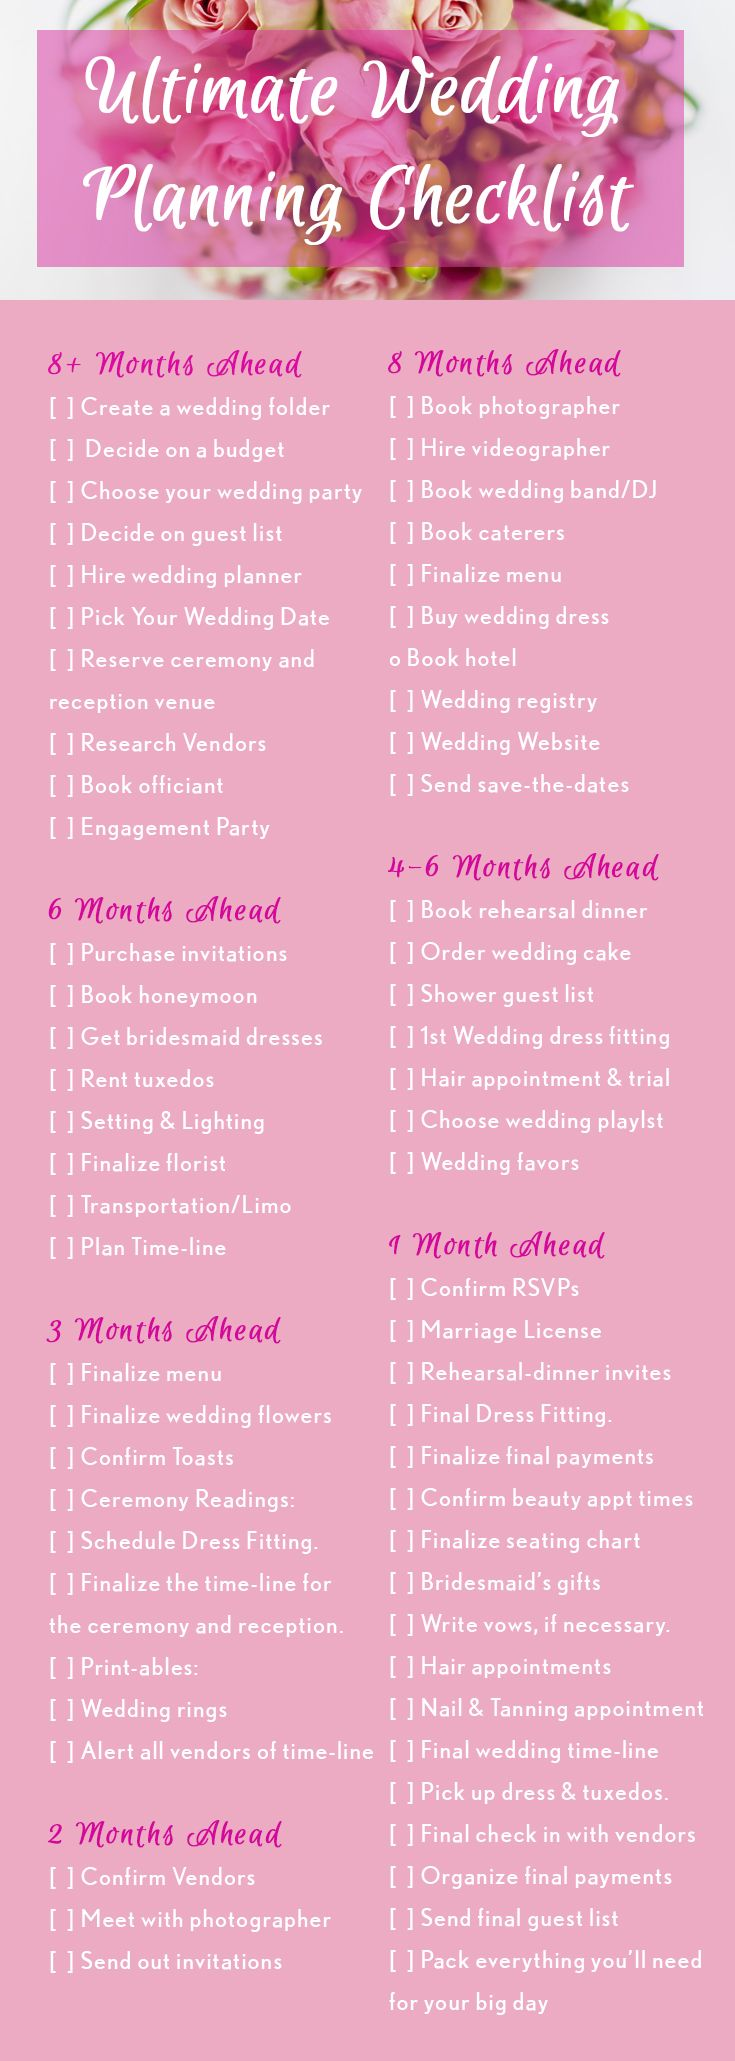 Wedding planner list